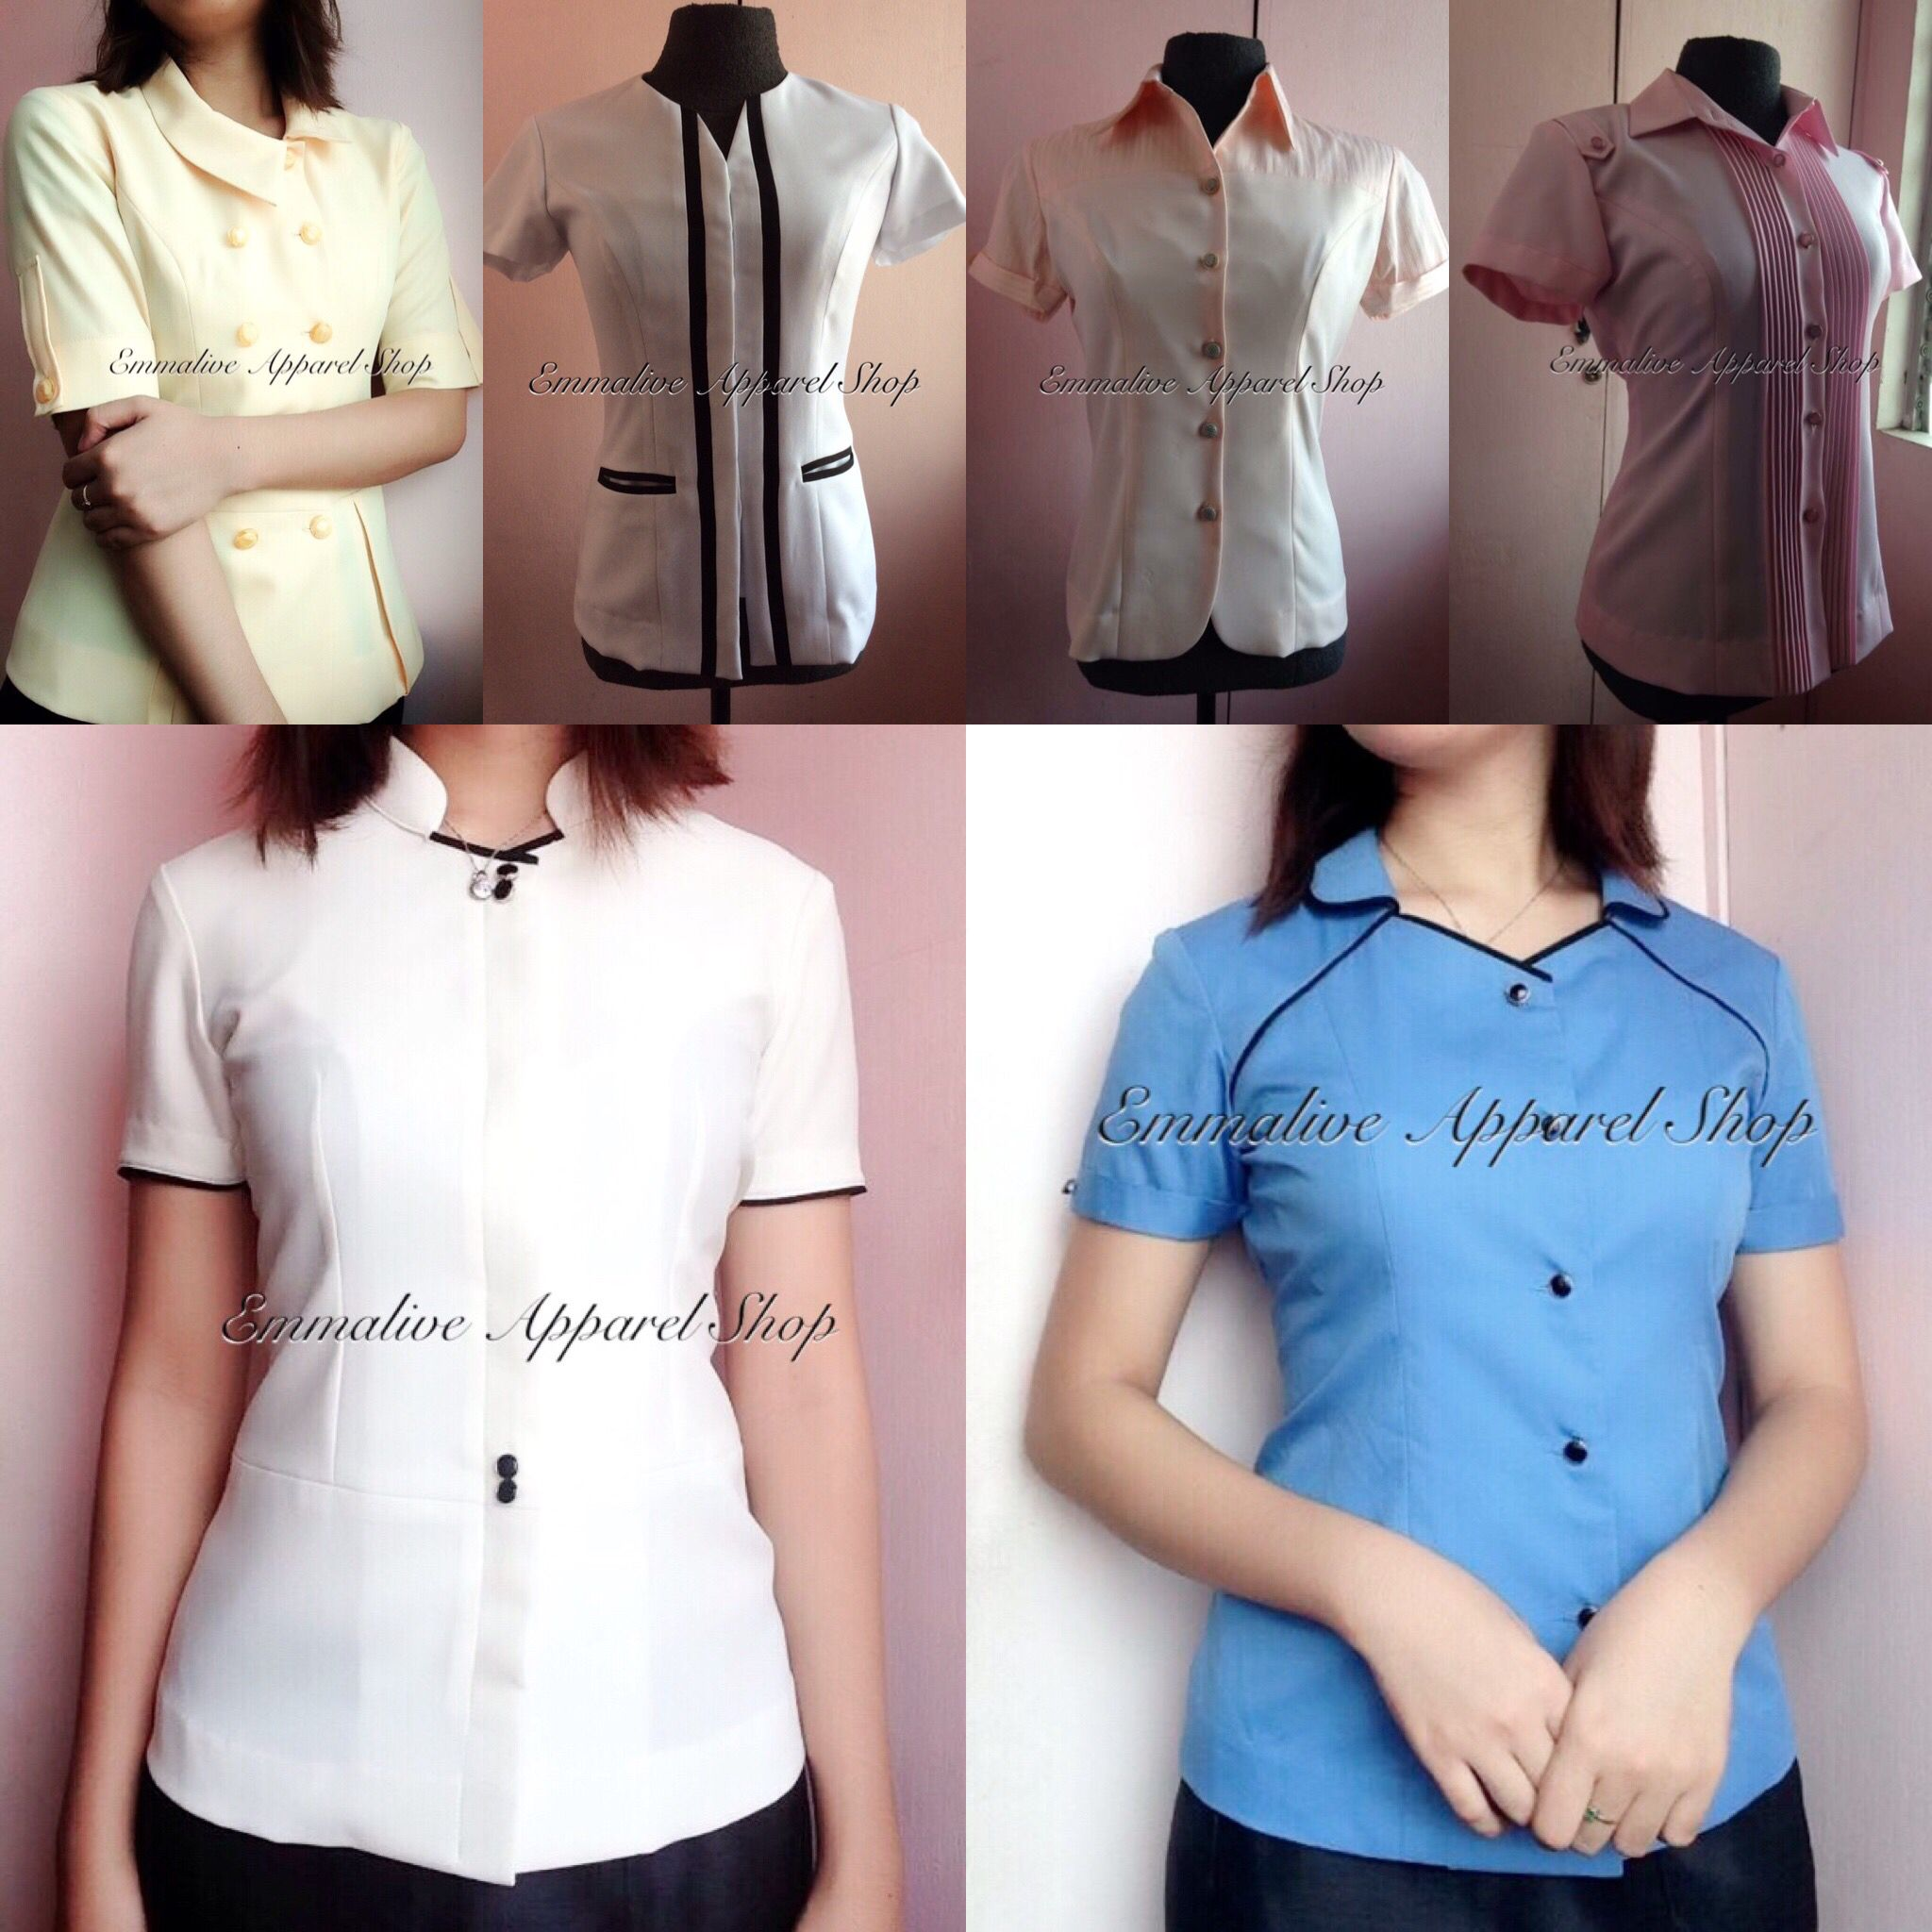 Office Uniforms Supplier Minimum For 50 Pax Email Us